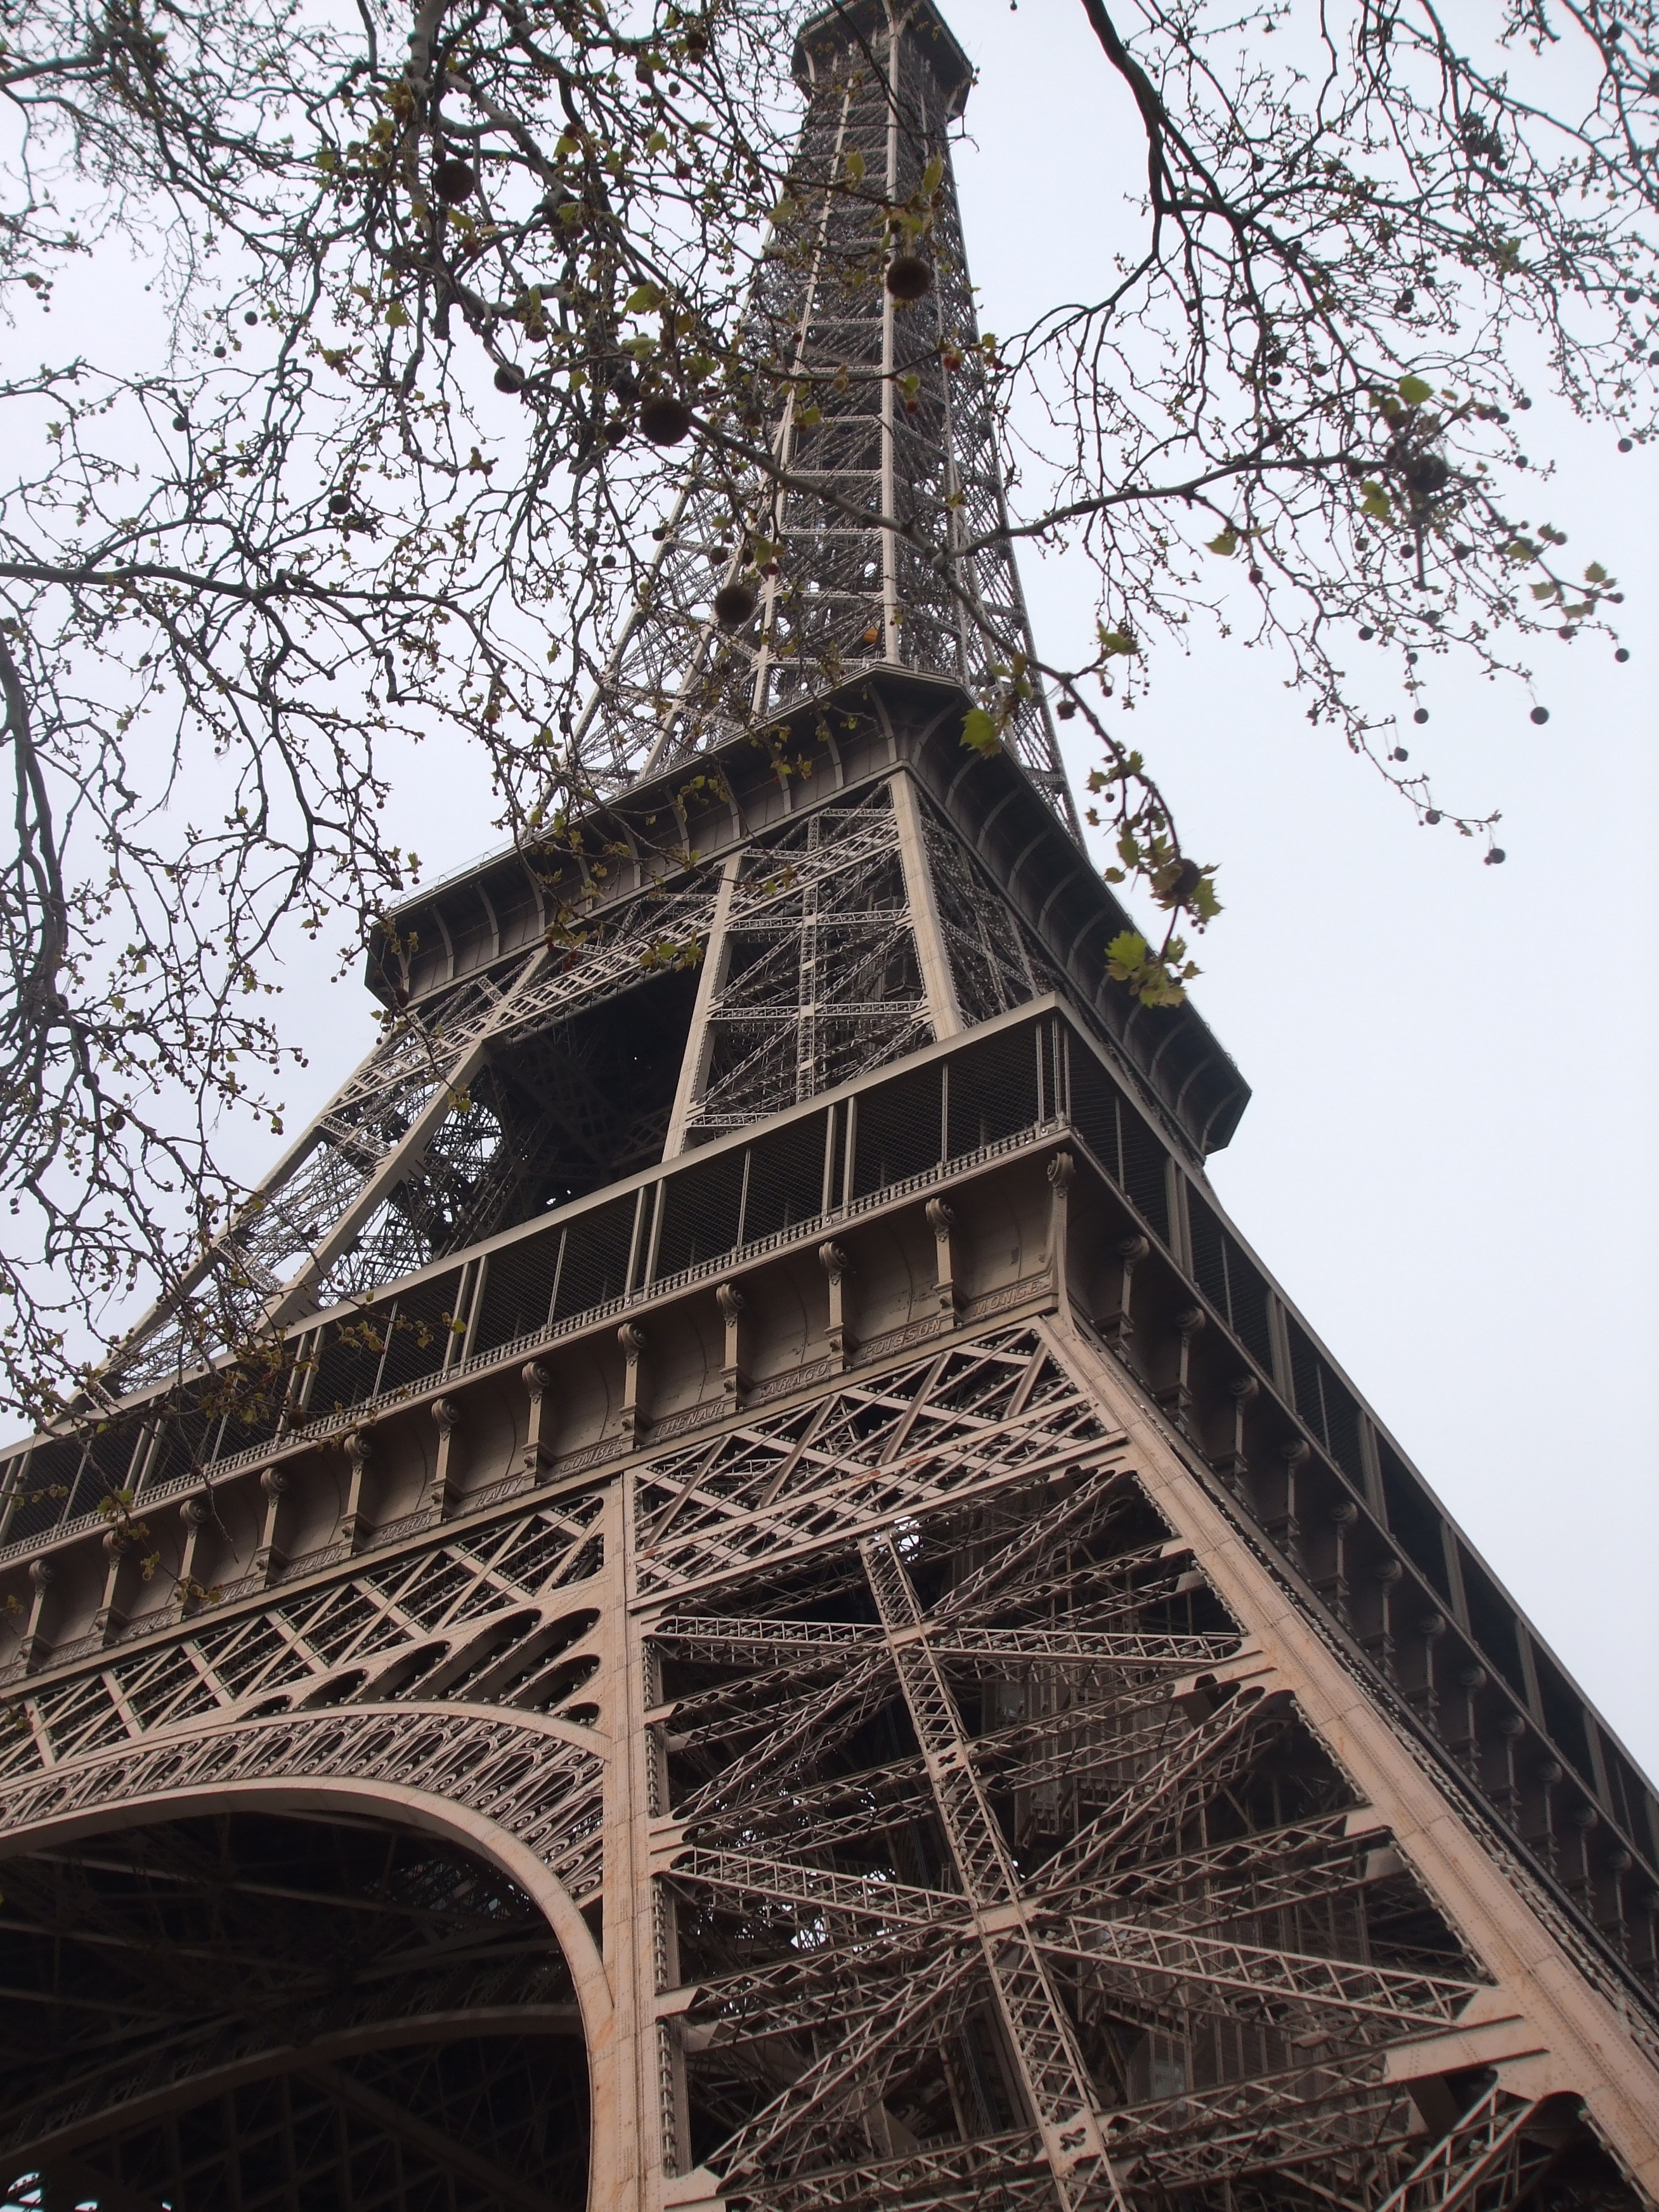 eiffel tower by eoghan153 on DeviantArt